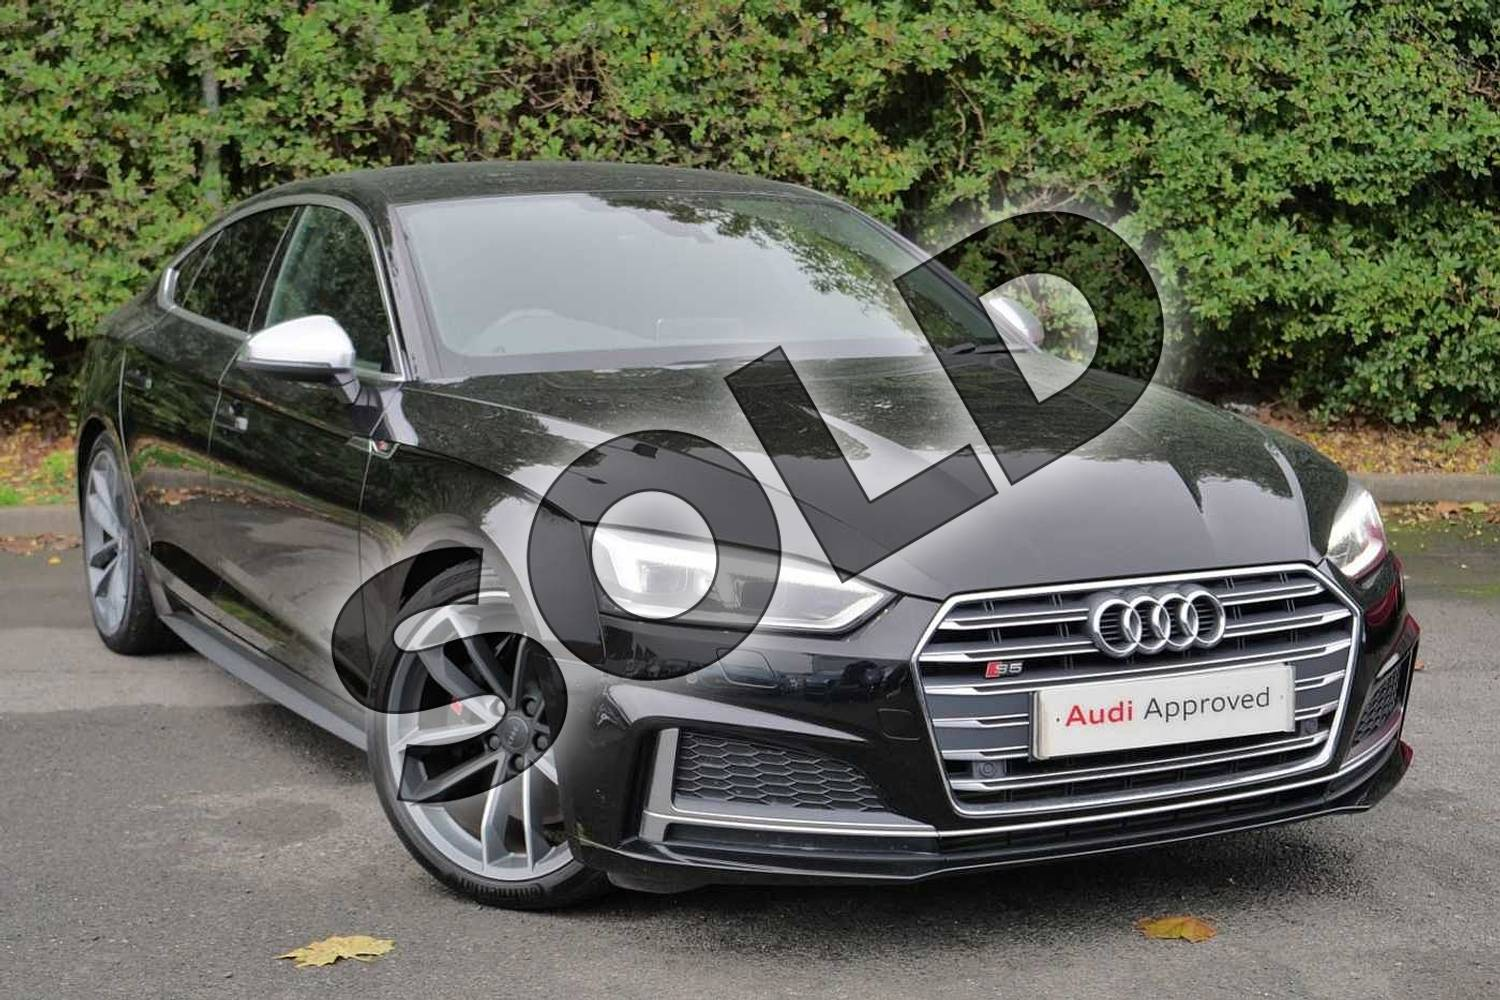 2017 Audi A5 Sportback S5 Quattro 5dr Tiptronic in Myth Black Metallic at Worcester Audi